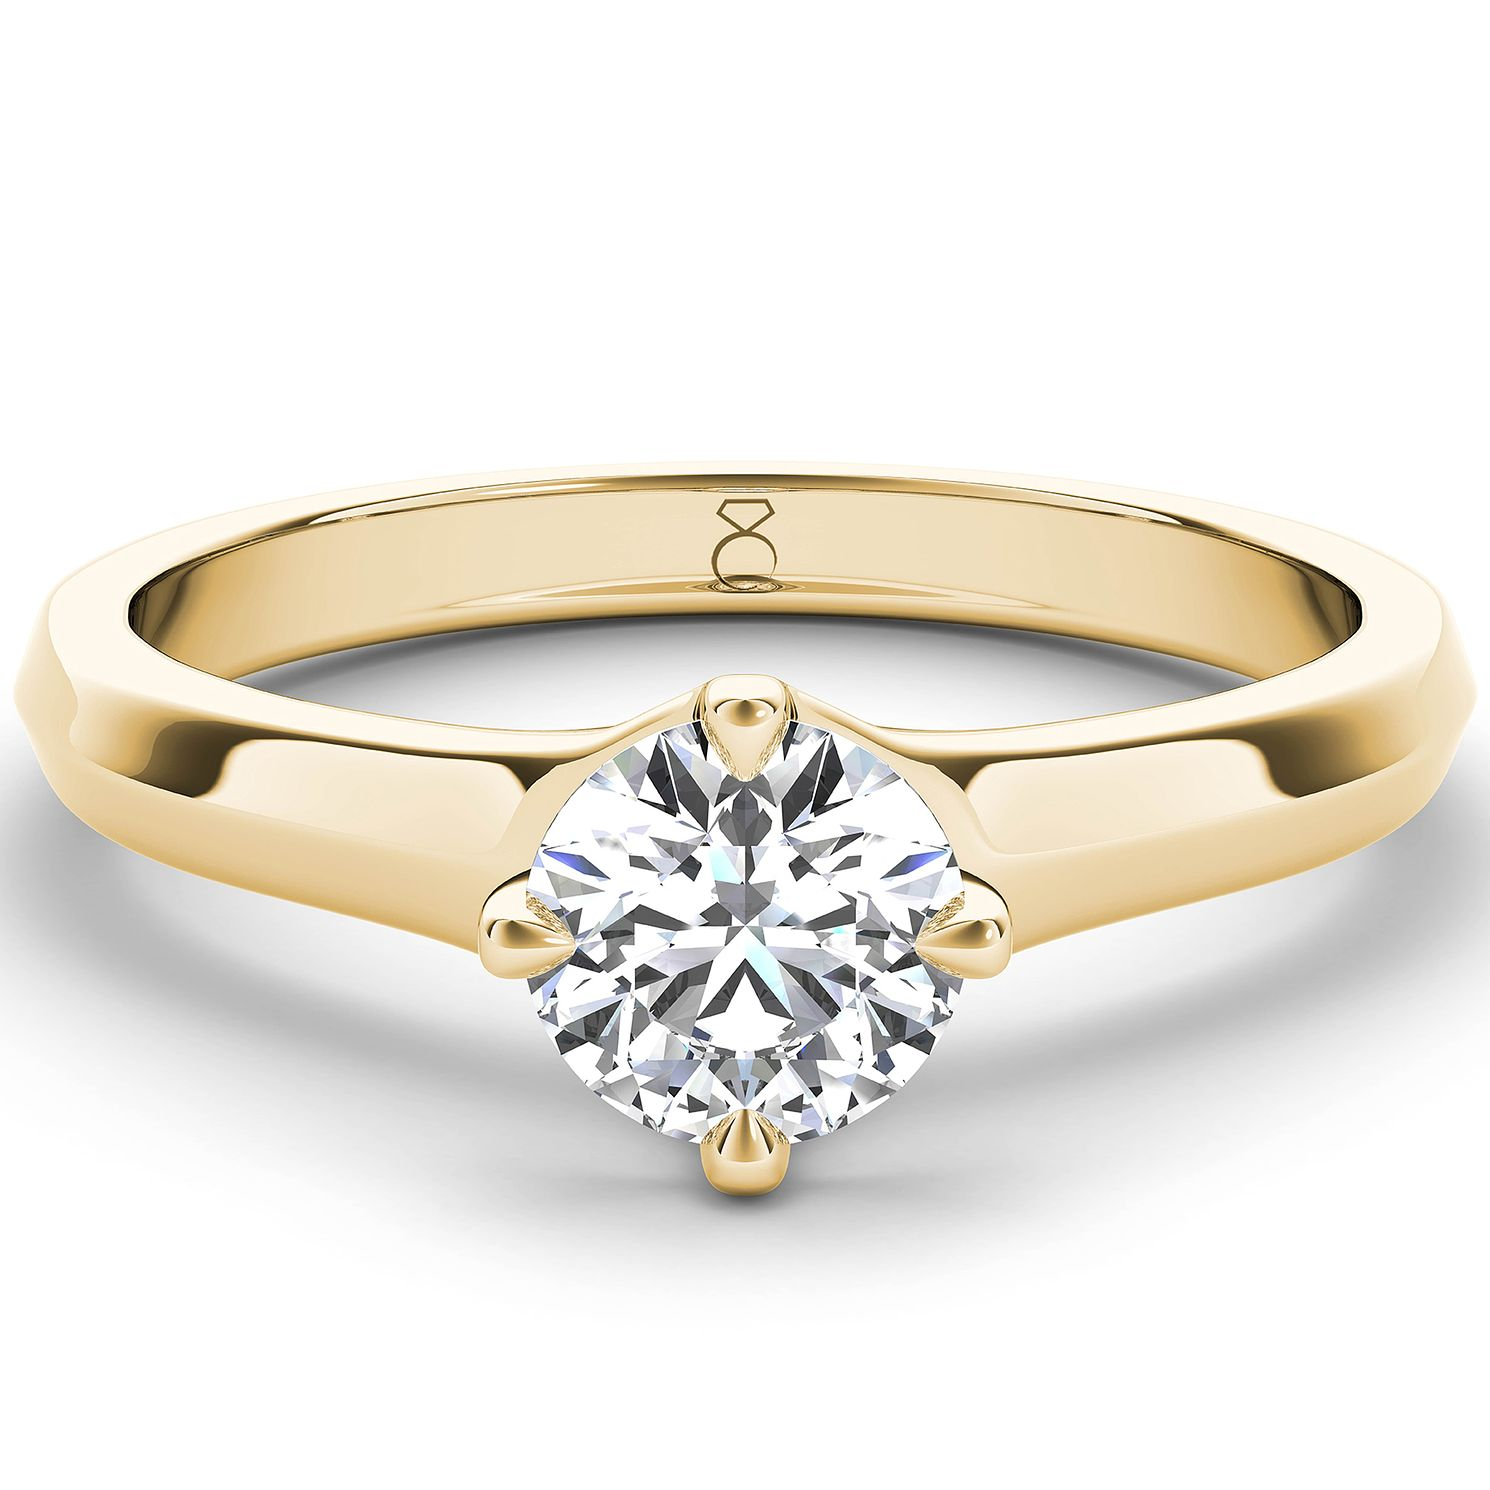 The Diamond Story 18ct Gold 2ct Diamond Solitaire Ring - Product number 4092805